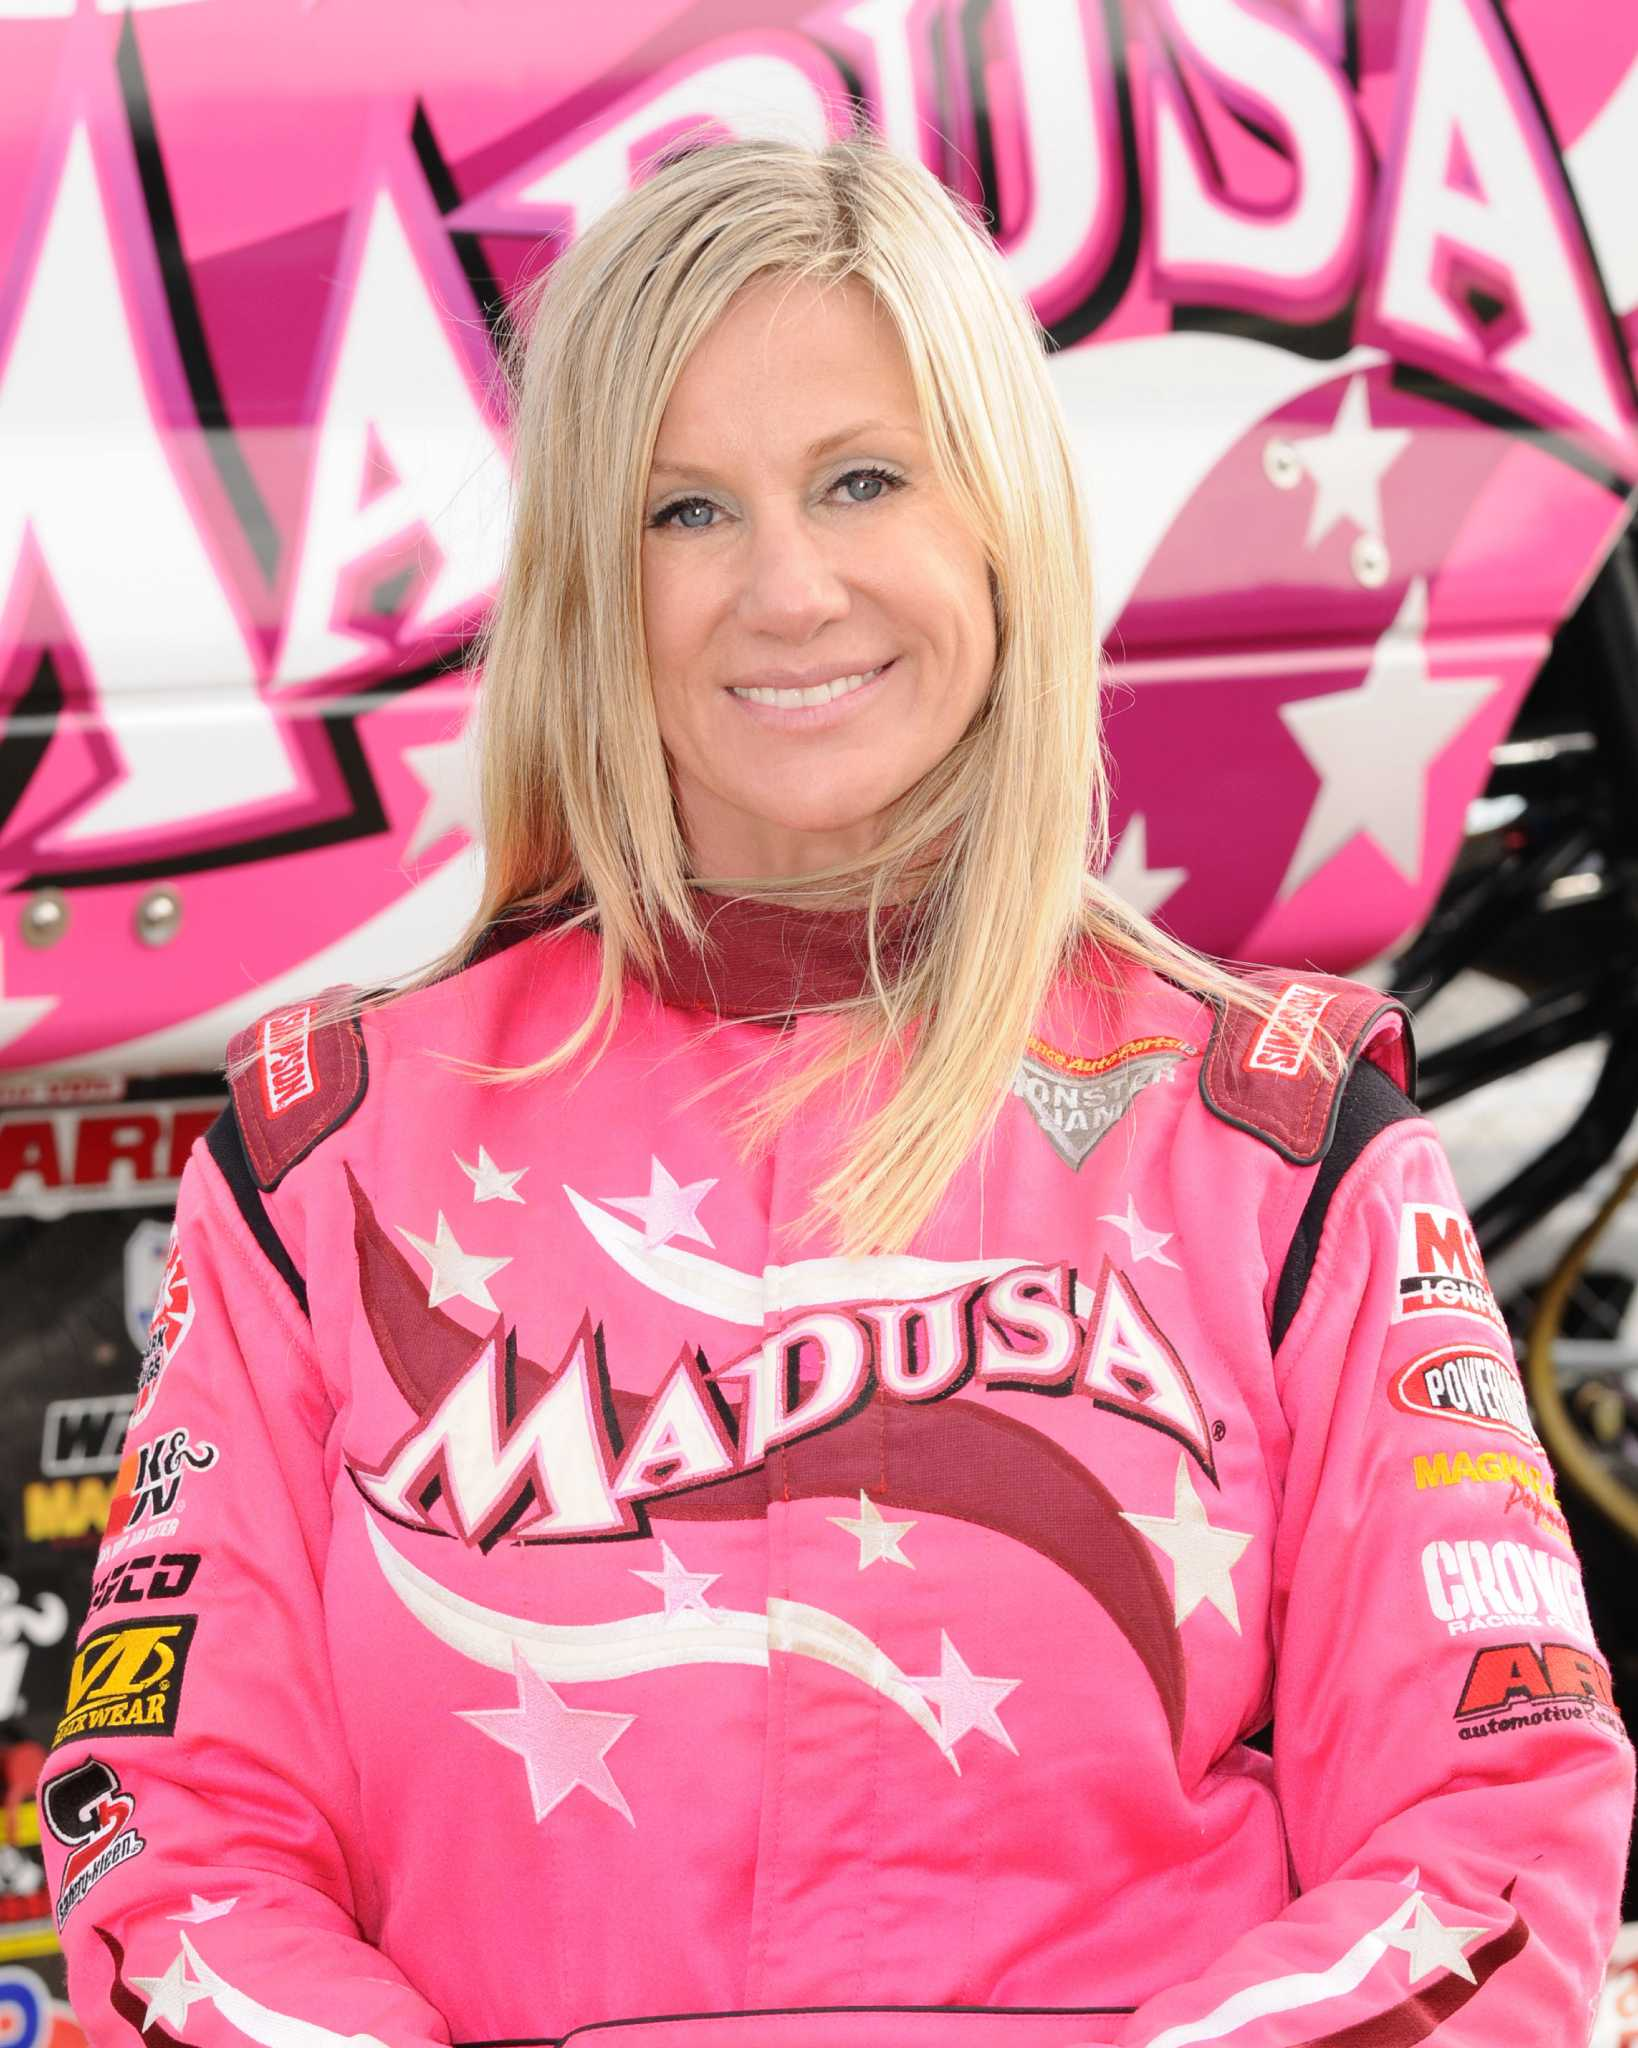 Madusa Crushing Monster Truck Gender Barriers Connecticut Post